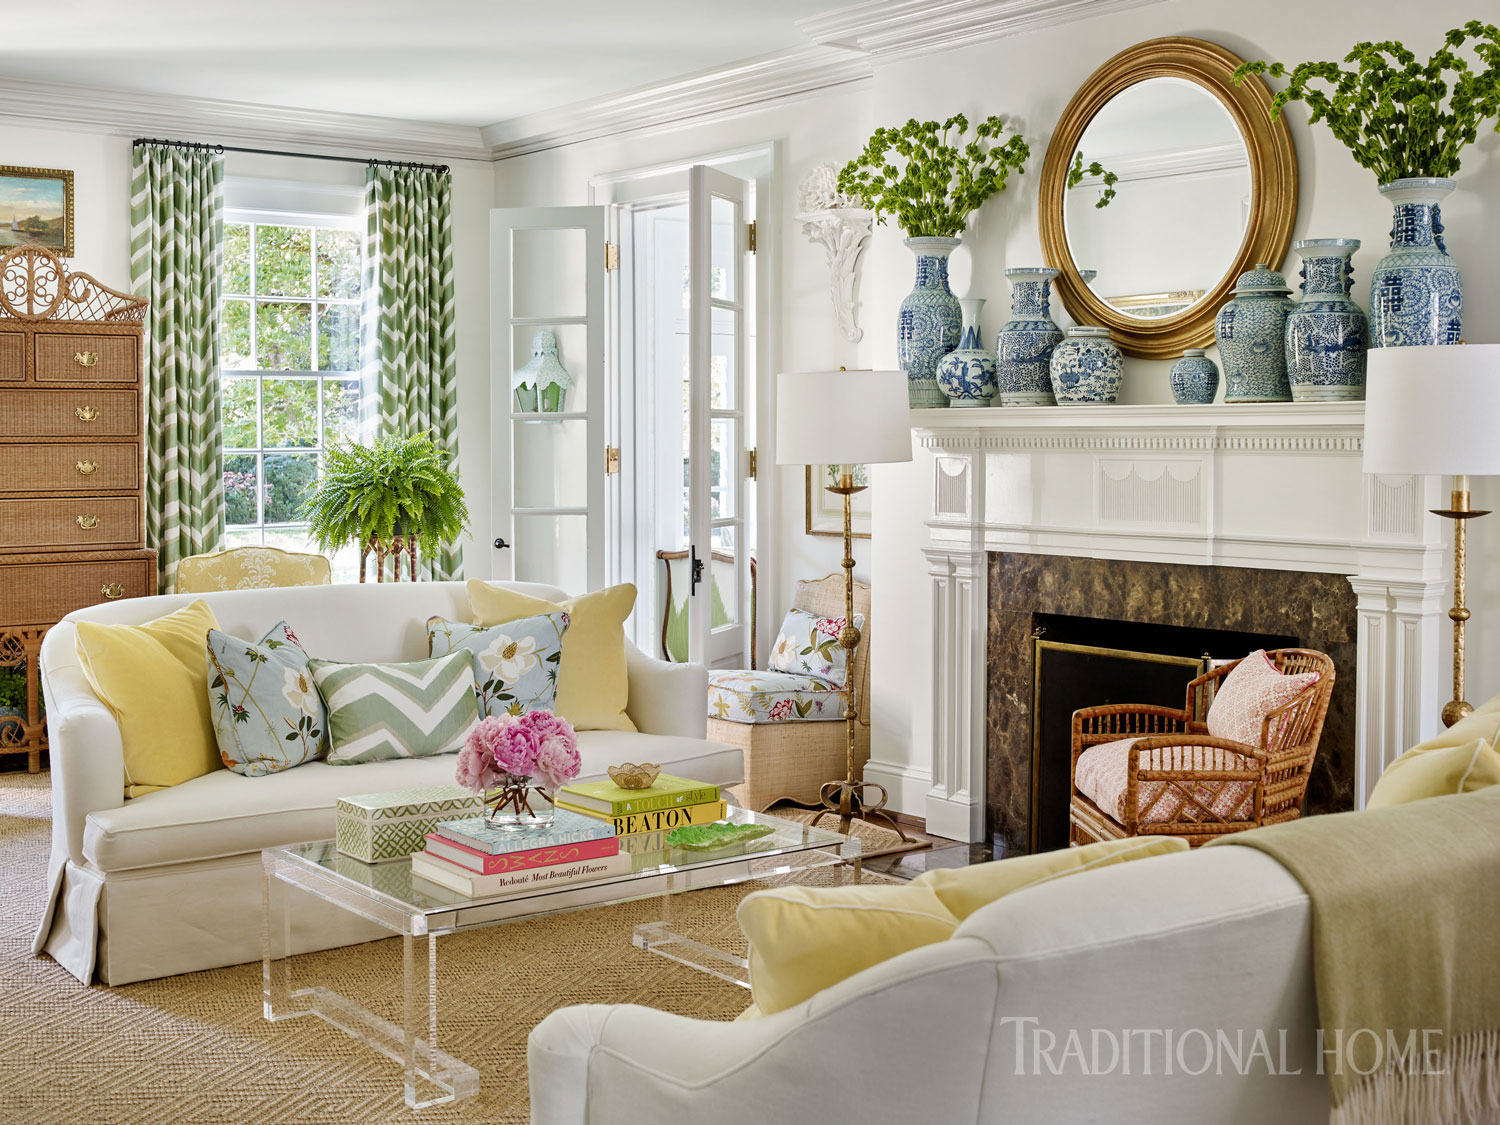 "Two ""Catherine"" sofas from Century Furniture flank a fireplace that's painted, along with the walls, in Benjamin Moore's ""Simply White."" The mantel is lined with homeowner Bunny Blackburn's collection of blue-and-white Chinese porcelain vases and jars. Designer Sarah Bartholomew added a touch of airiness with an acrylic cocktail table from Interlude Home. The wicker highboy is vintage Ralph Lauren for Henredon; the rattan chair is also a vintage find."